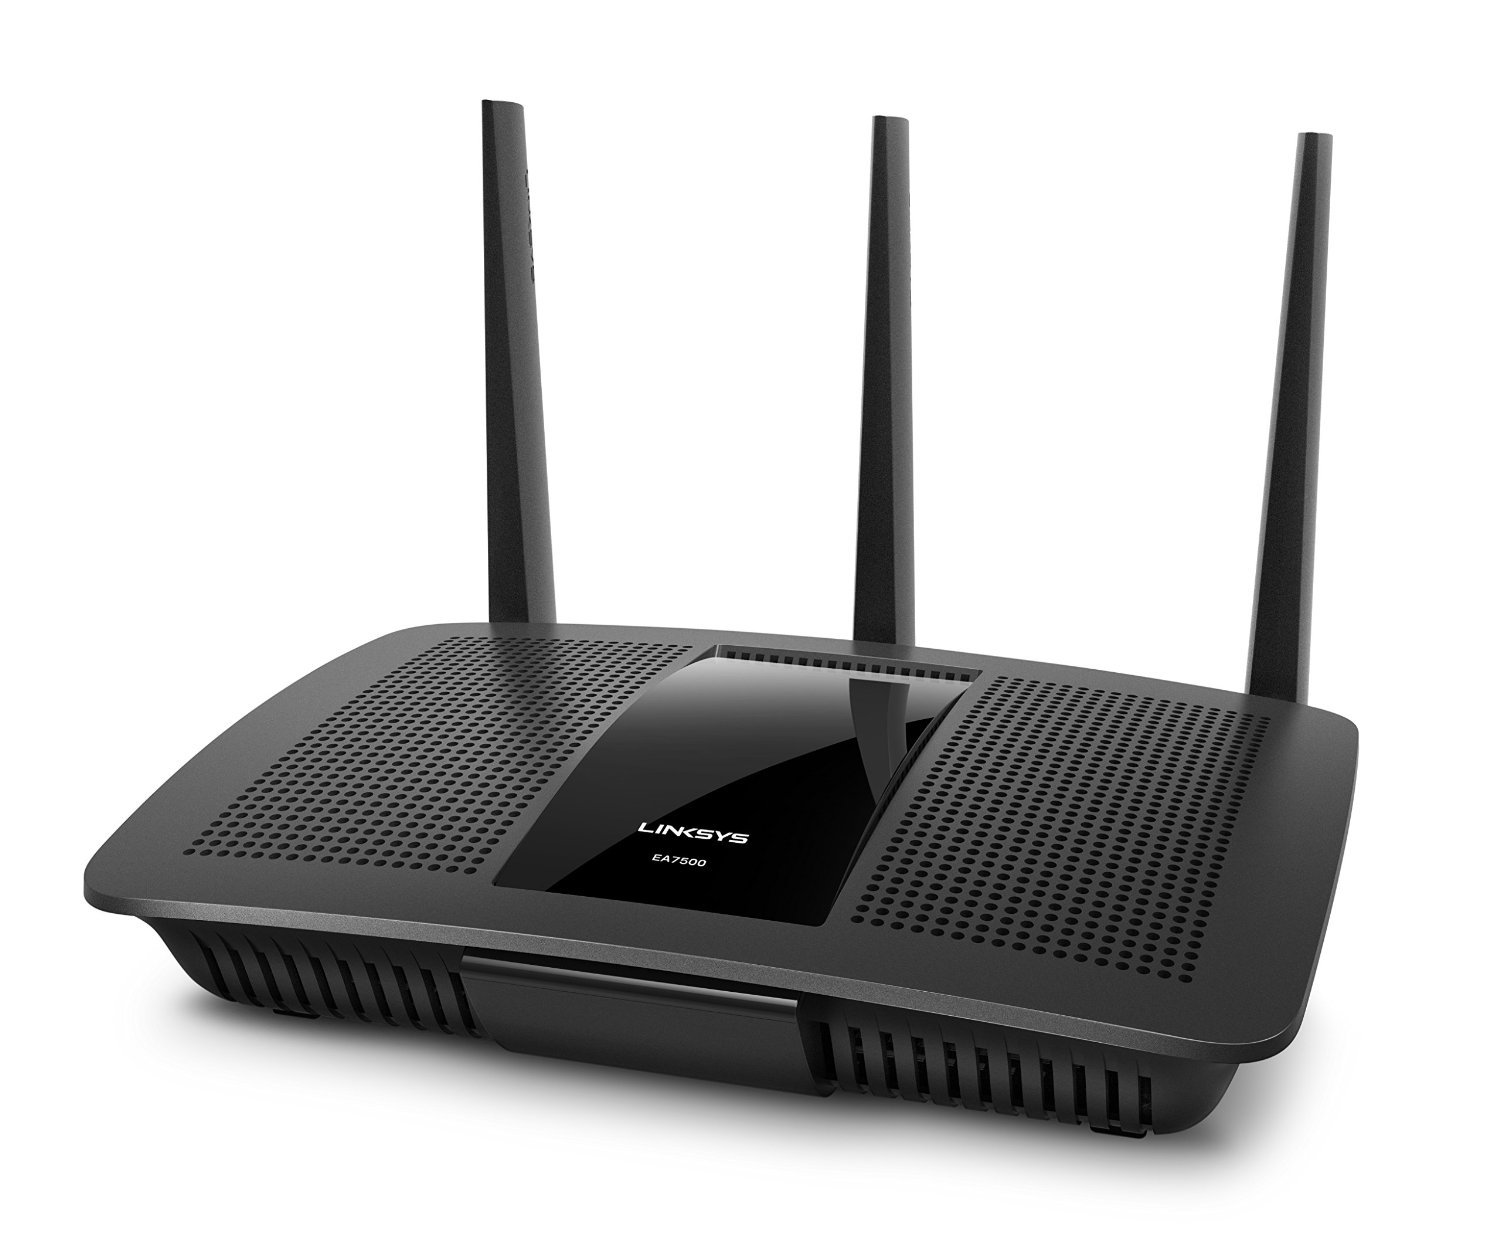 Linksys EA7500-EU Wireless Dualband MU-MIMO Gigabit Router (1x USB 3.0, 1x USB 2.0, 4x Gigabit, 3 x 3 Next AC-Generation Beamforming, Smart Wi-Fi App)